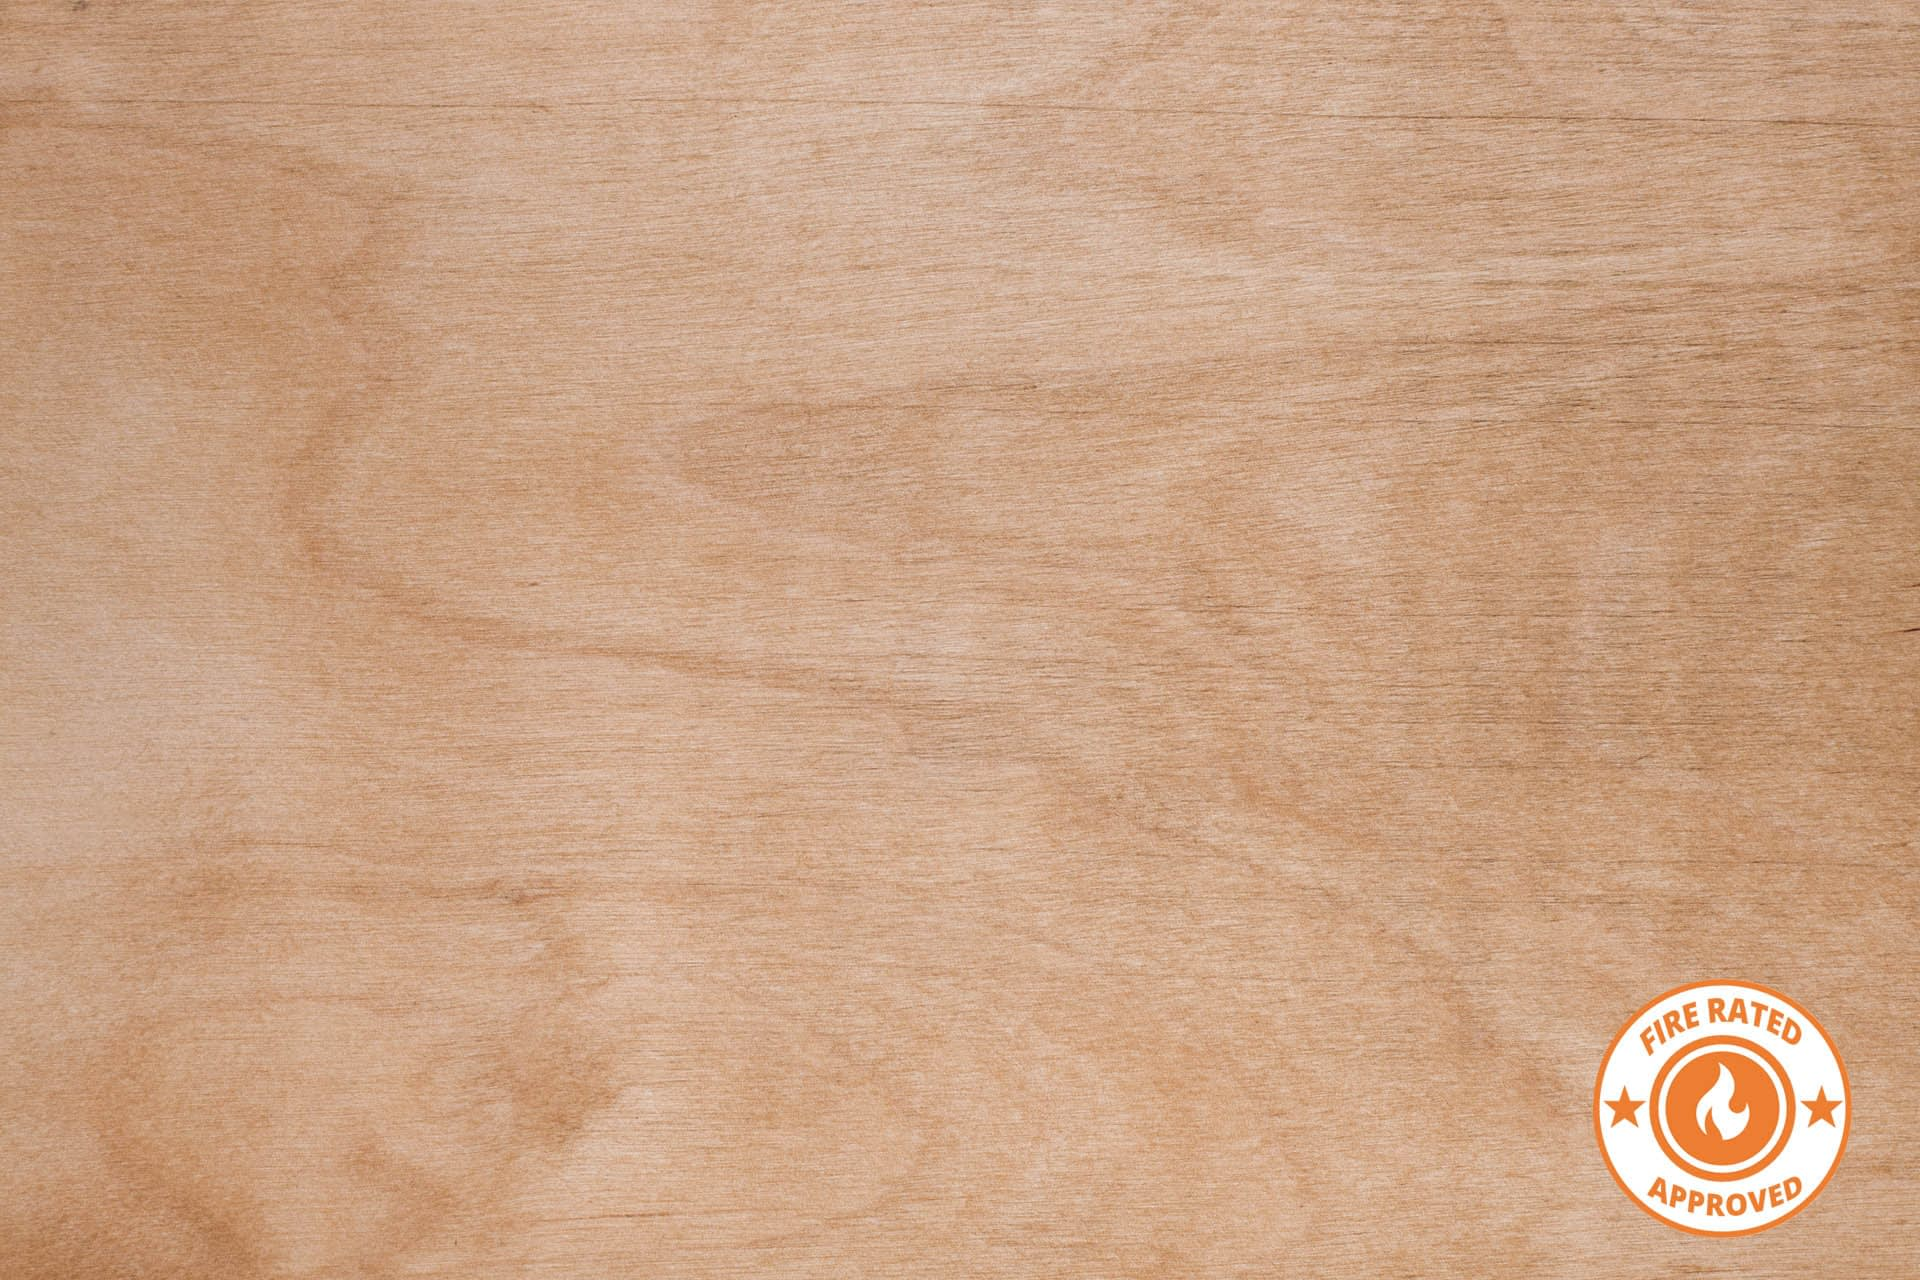 fire-rated-board-plywood-access-panels-protection-texture